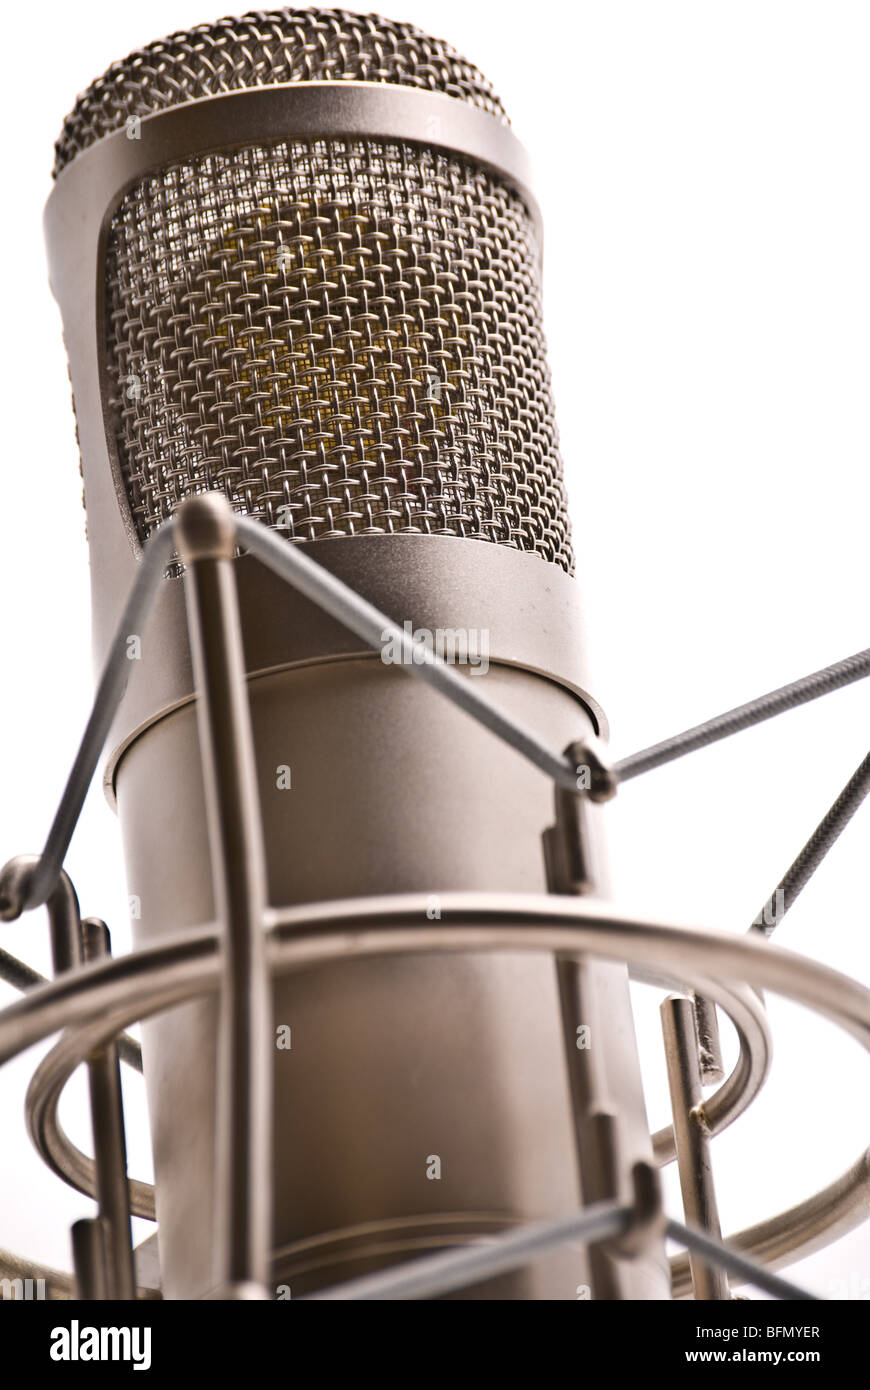 Close-up of a large diaphragm microphone in a shockmount against a white background - Stock Image